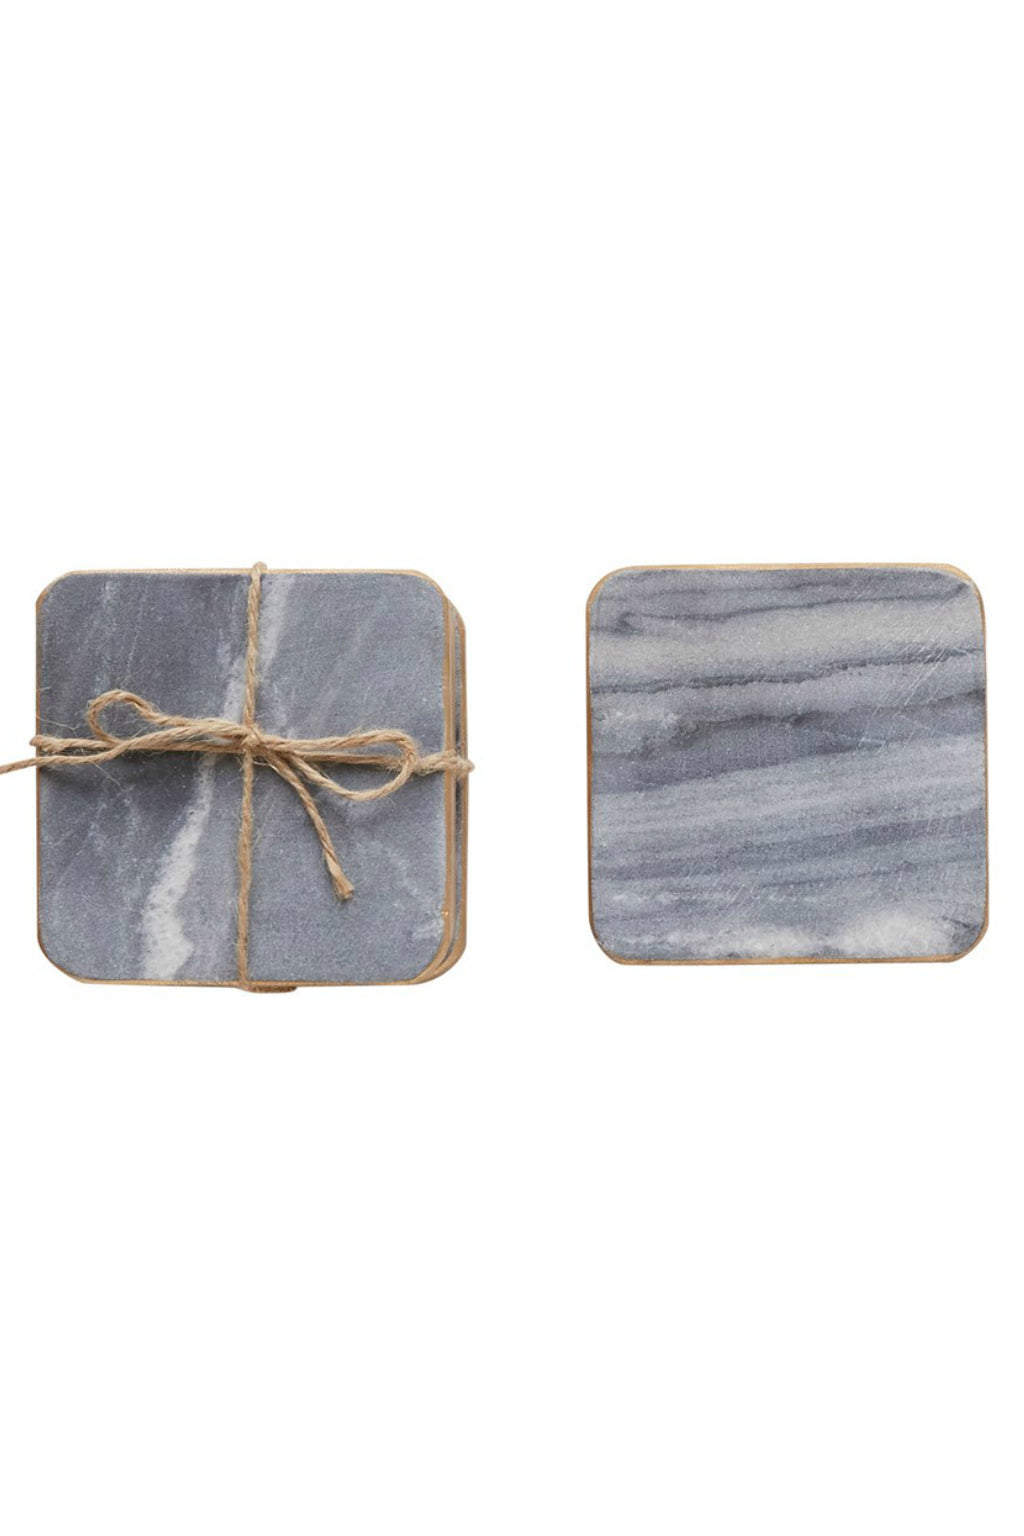 Creative Co-op Square Marble Coasters